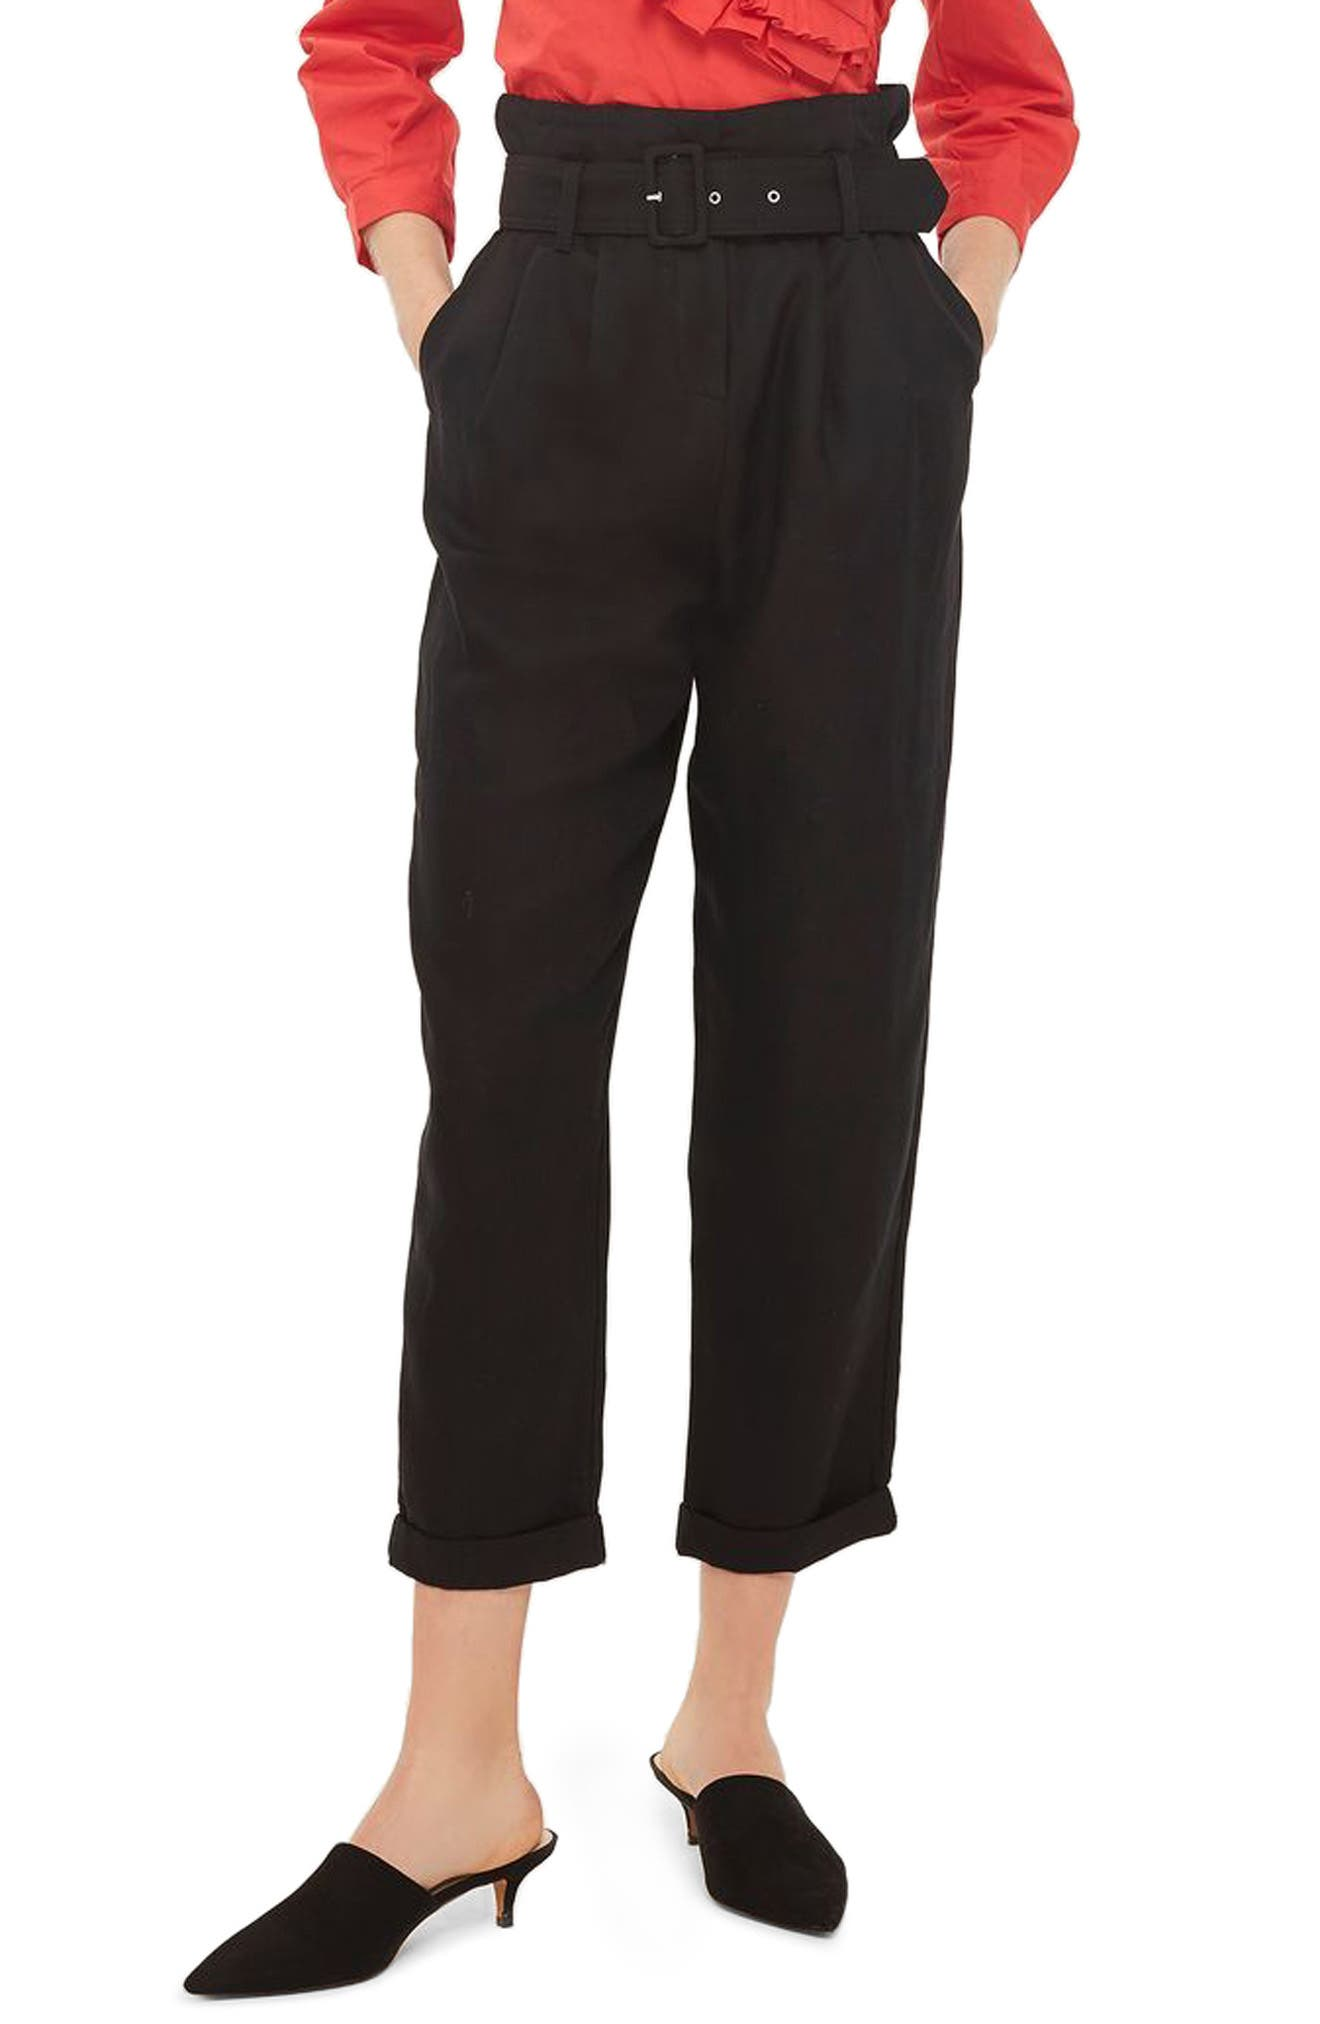 Mensy Belted Trousers,                         Main,                         color, Black